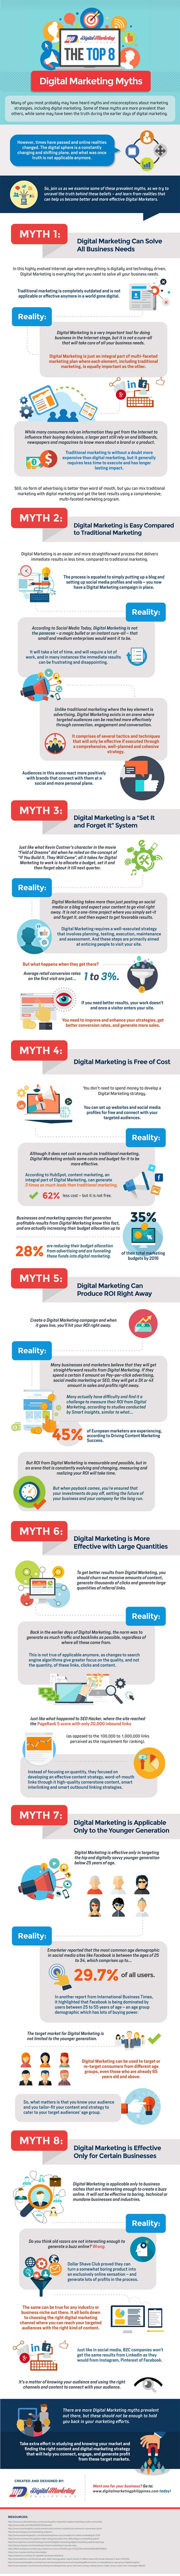 marketing%20myths%20info